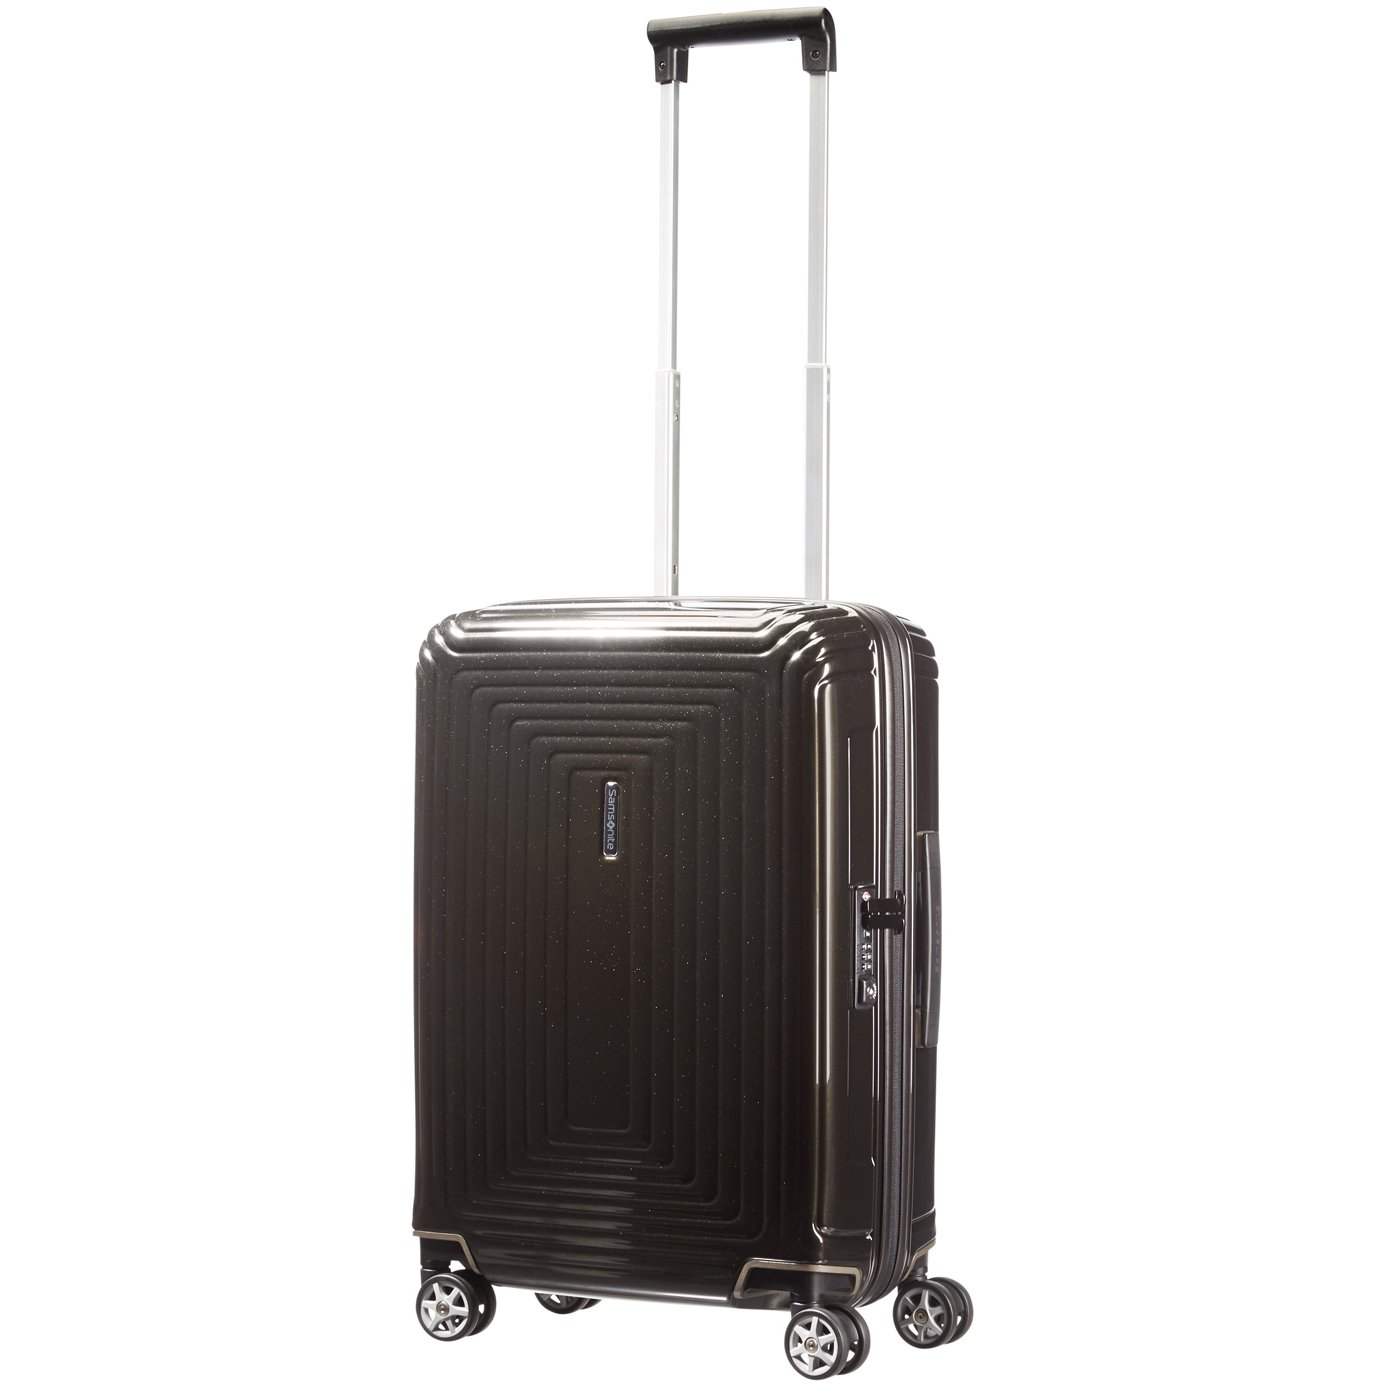 Samsonite Neopulse Spinner S Test